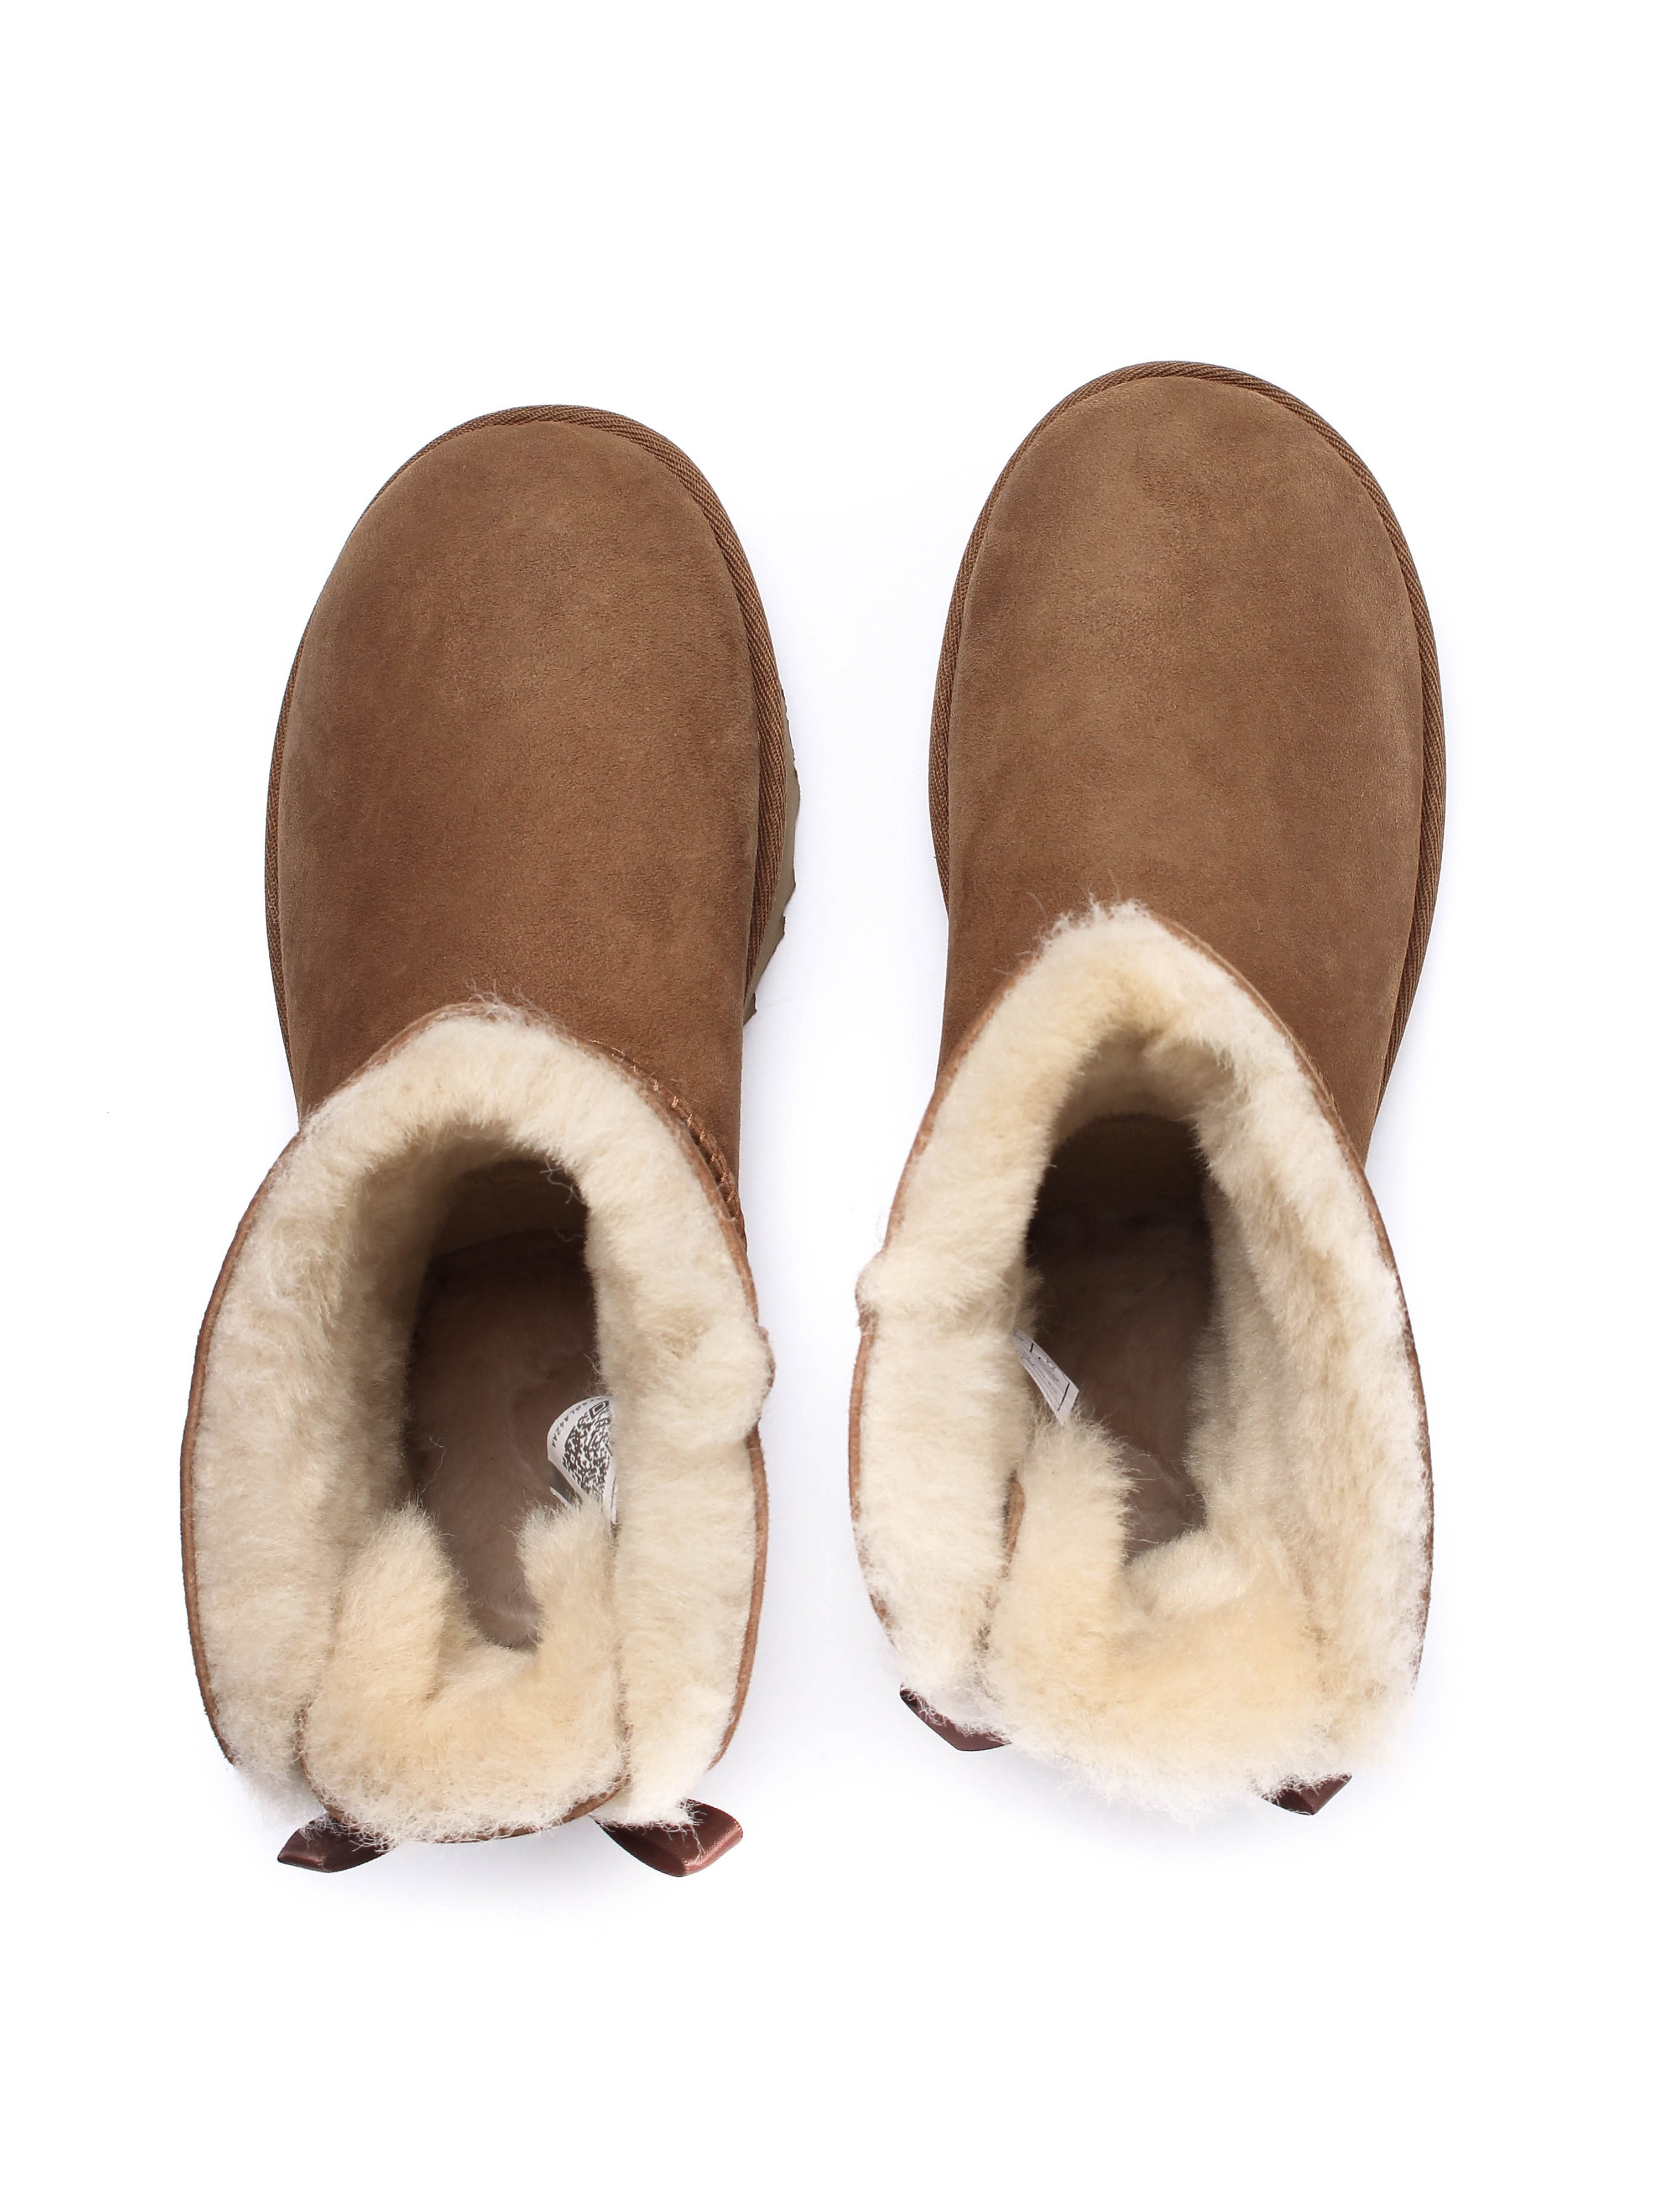 Ugg Women's Bailey Bow II Sheepskin Boots - Chestnut